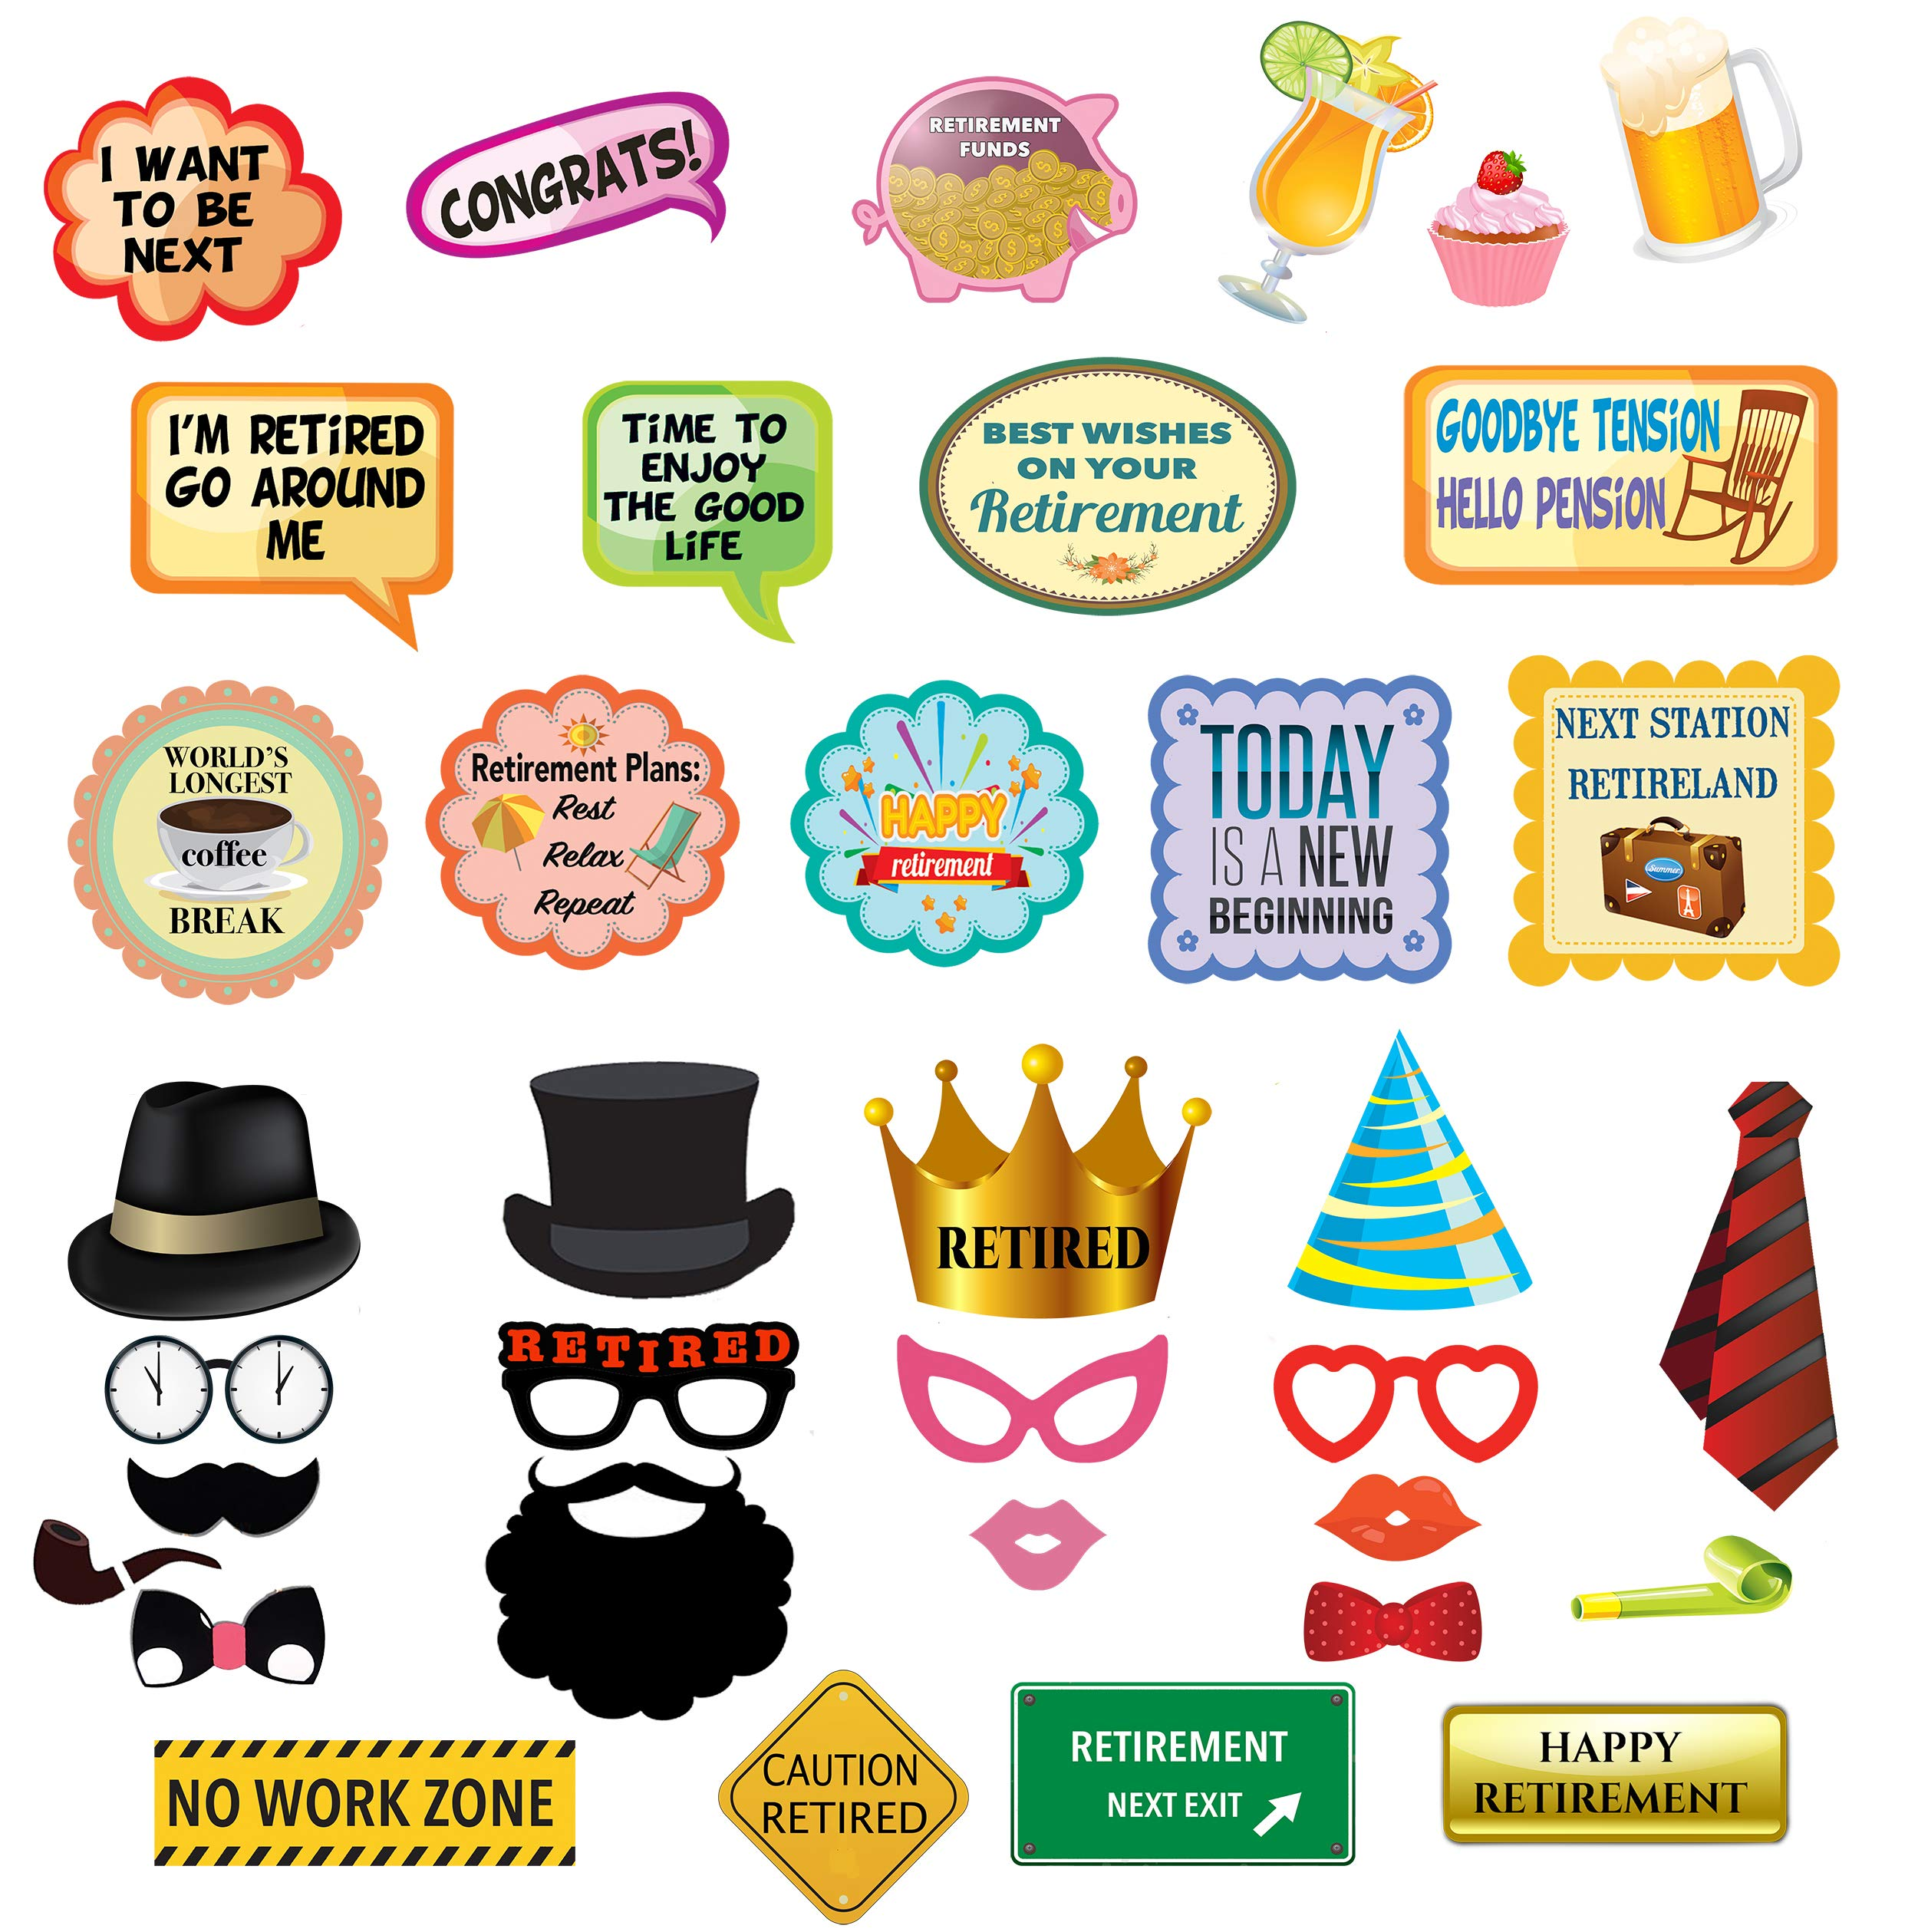 Retirement Party Photo Booth Props - 36 pc Retirement Party Supplies for Pictures and Decorations Includes Colorful Dress-Up Props, Speech Bubbles, Phrase Signs - Unisex Retirement Décor by Scapa Pro